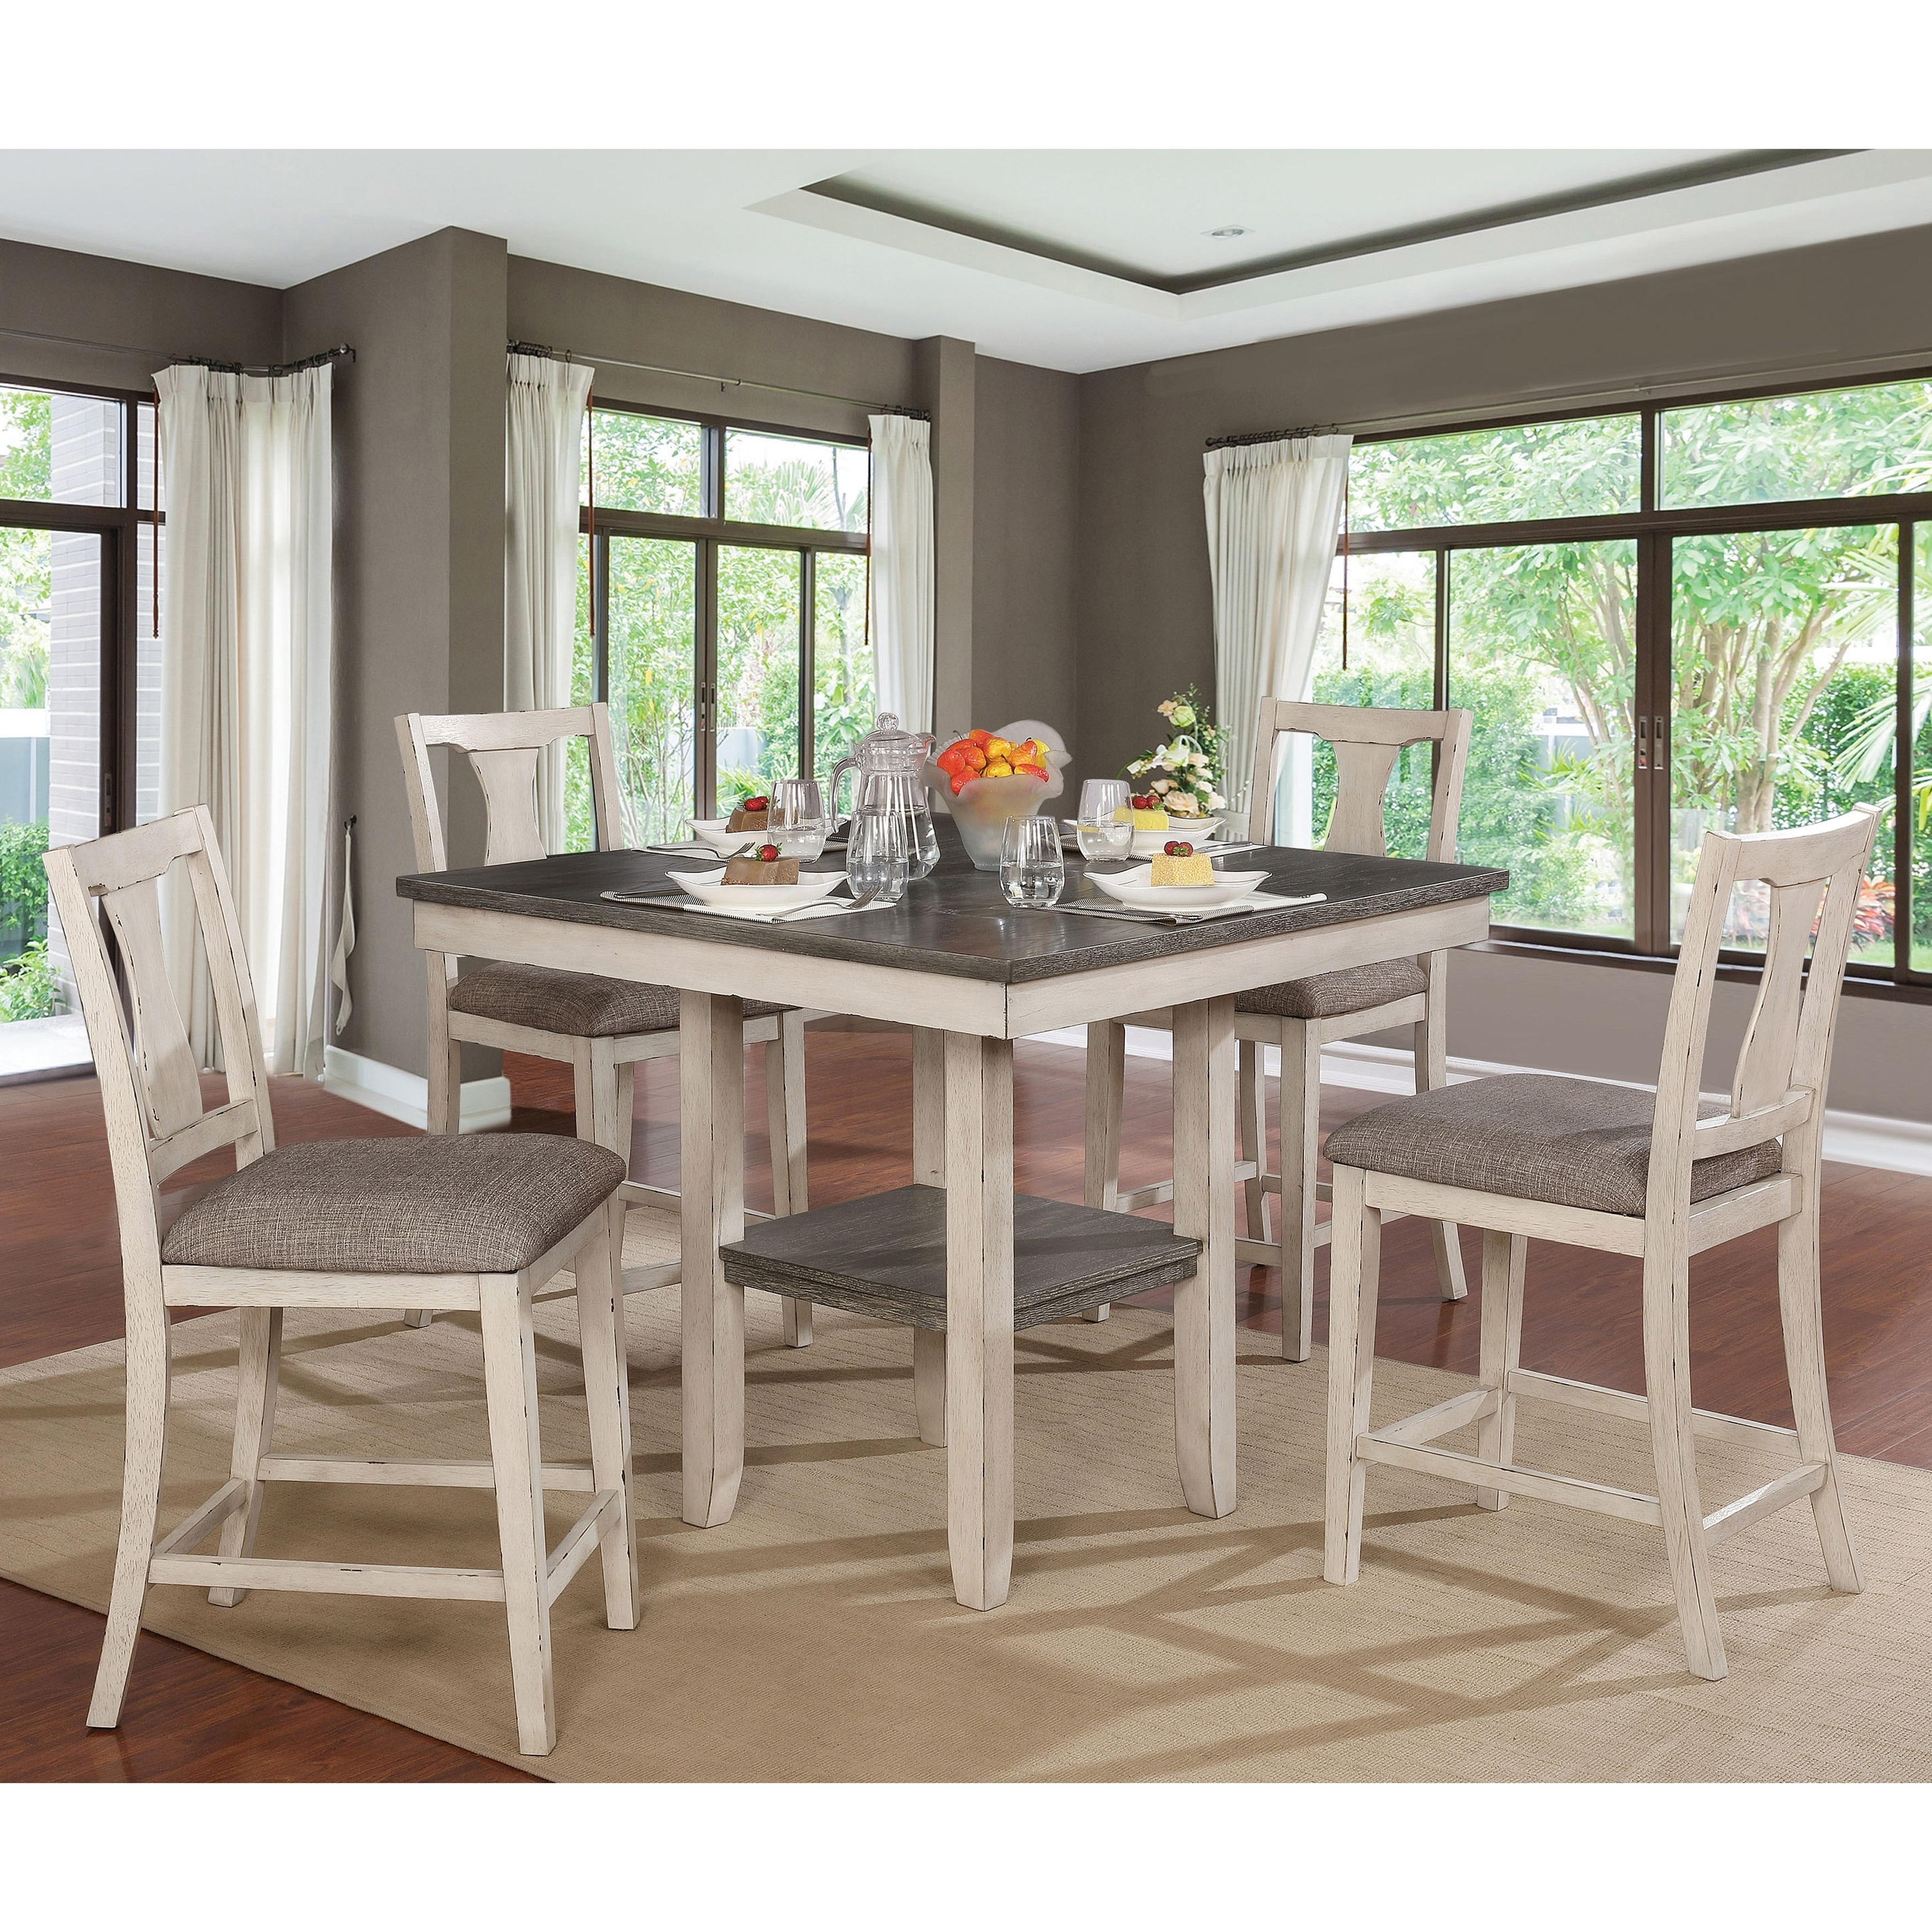 Copper Grove Merichleri Rustic 5-piece Counter Height Dining Set